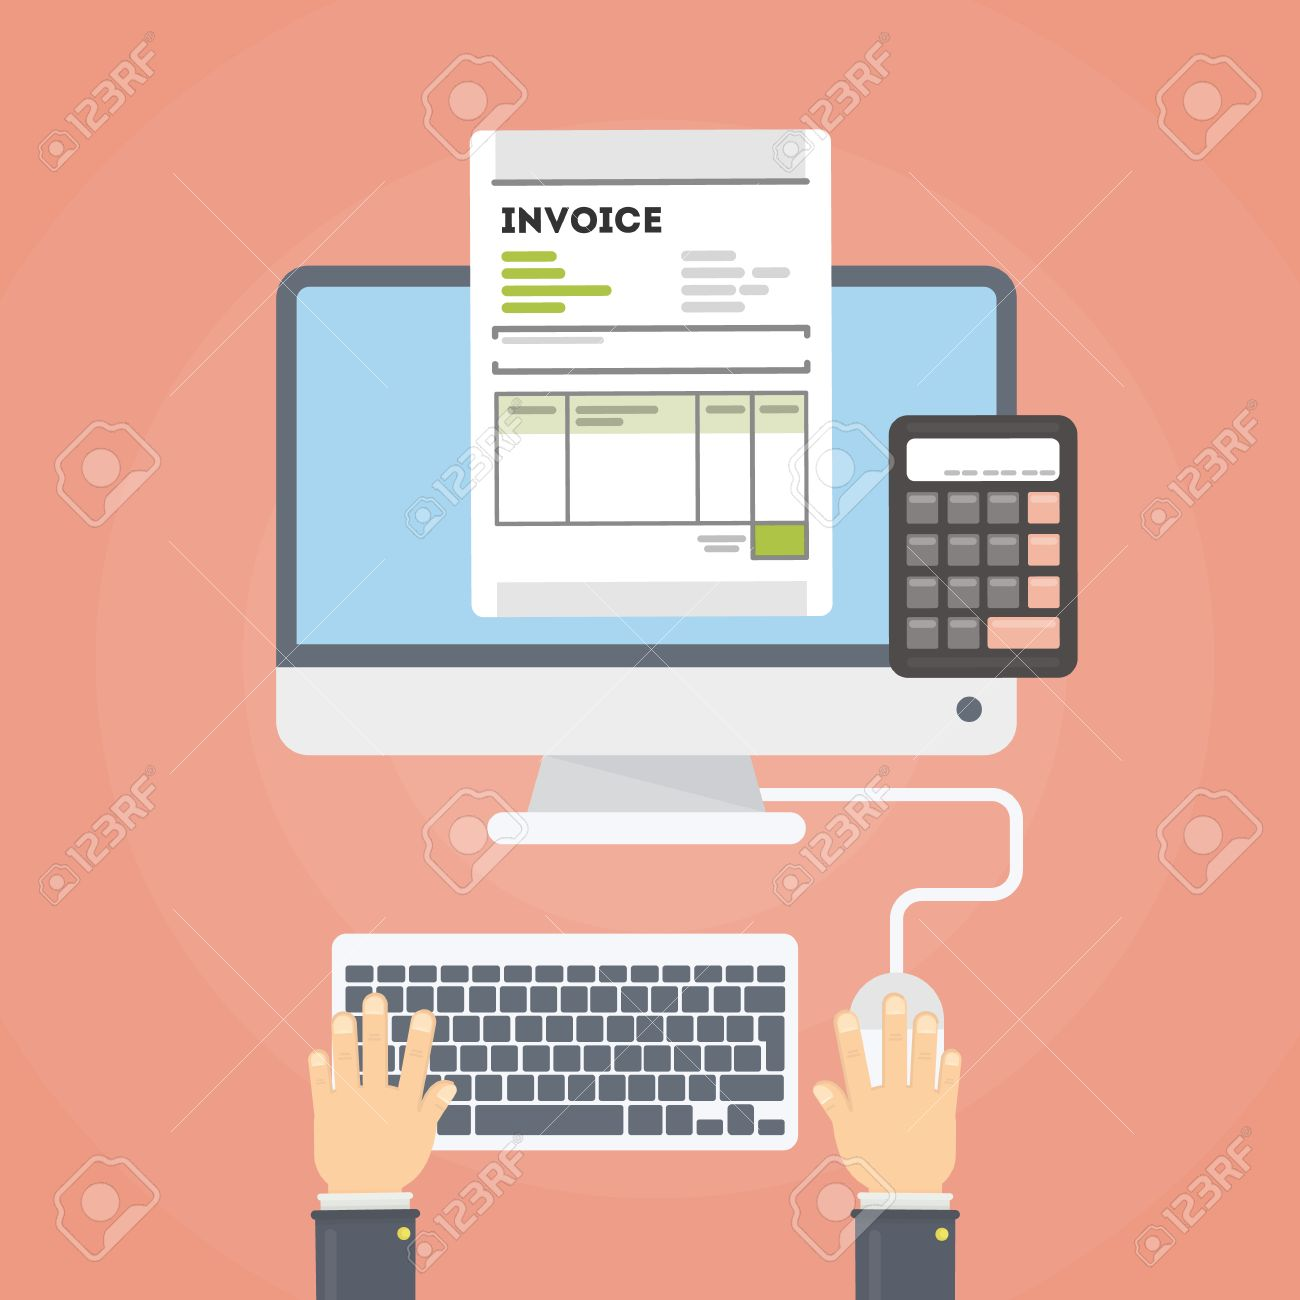 Invoice Concept Illustration Invoice Documents With Hand With - Invoice finance calculator